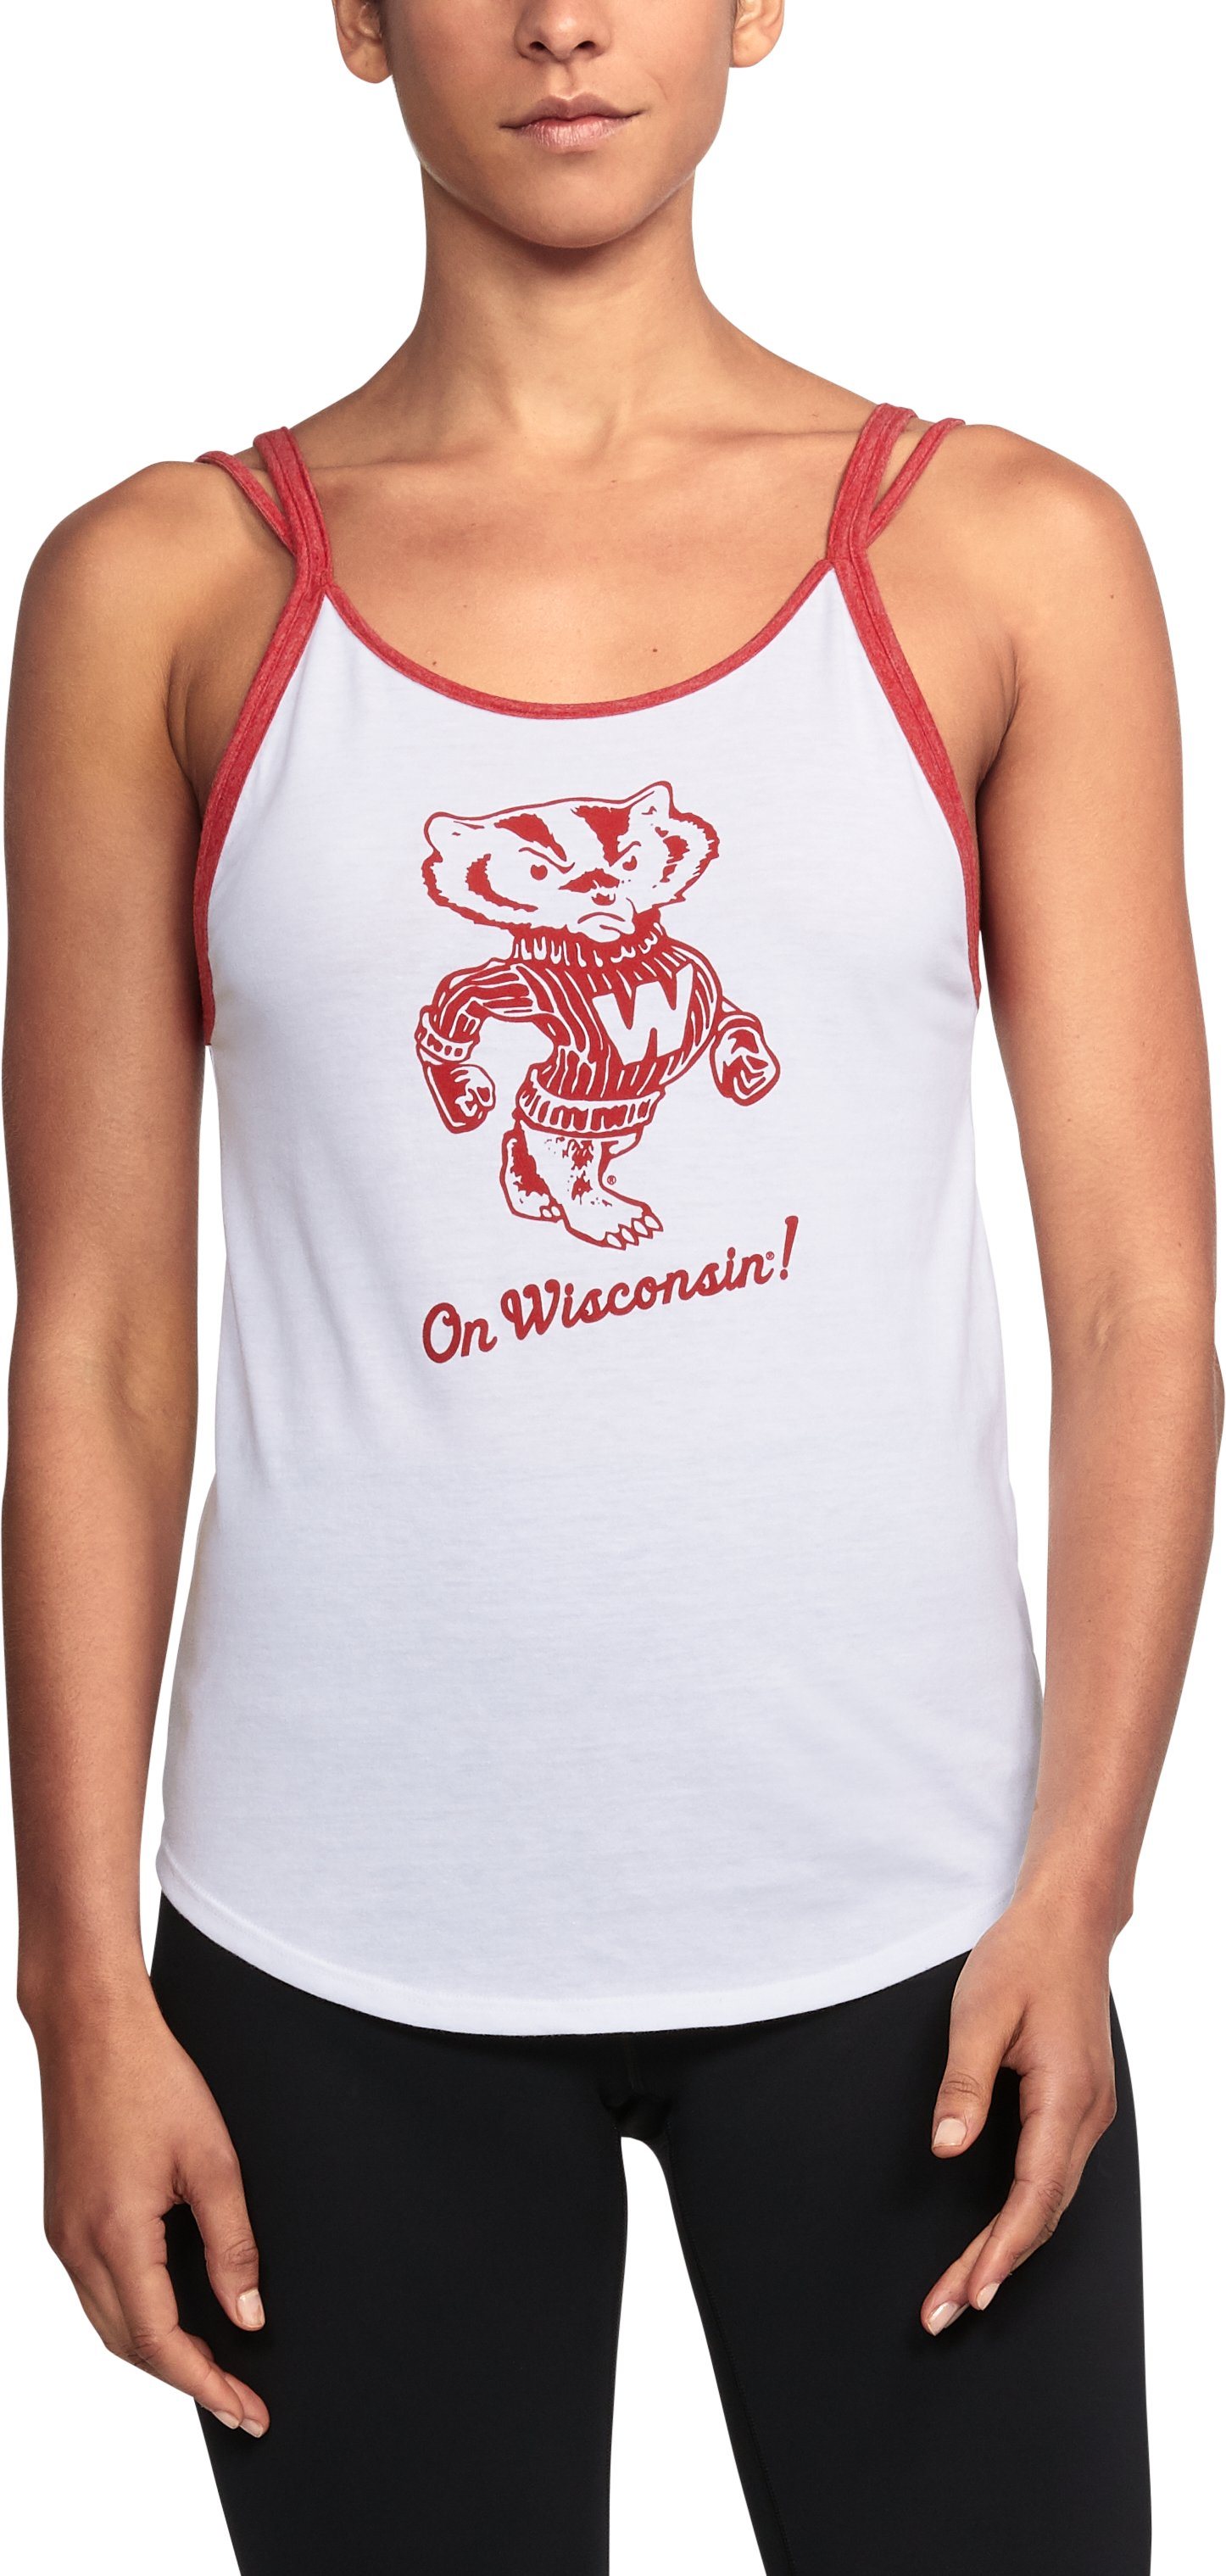 Women's Wisconsin UA Iconic Tank, White